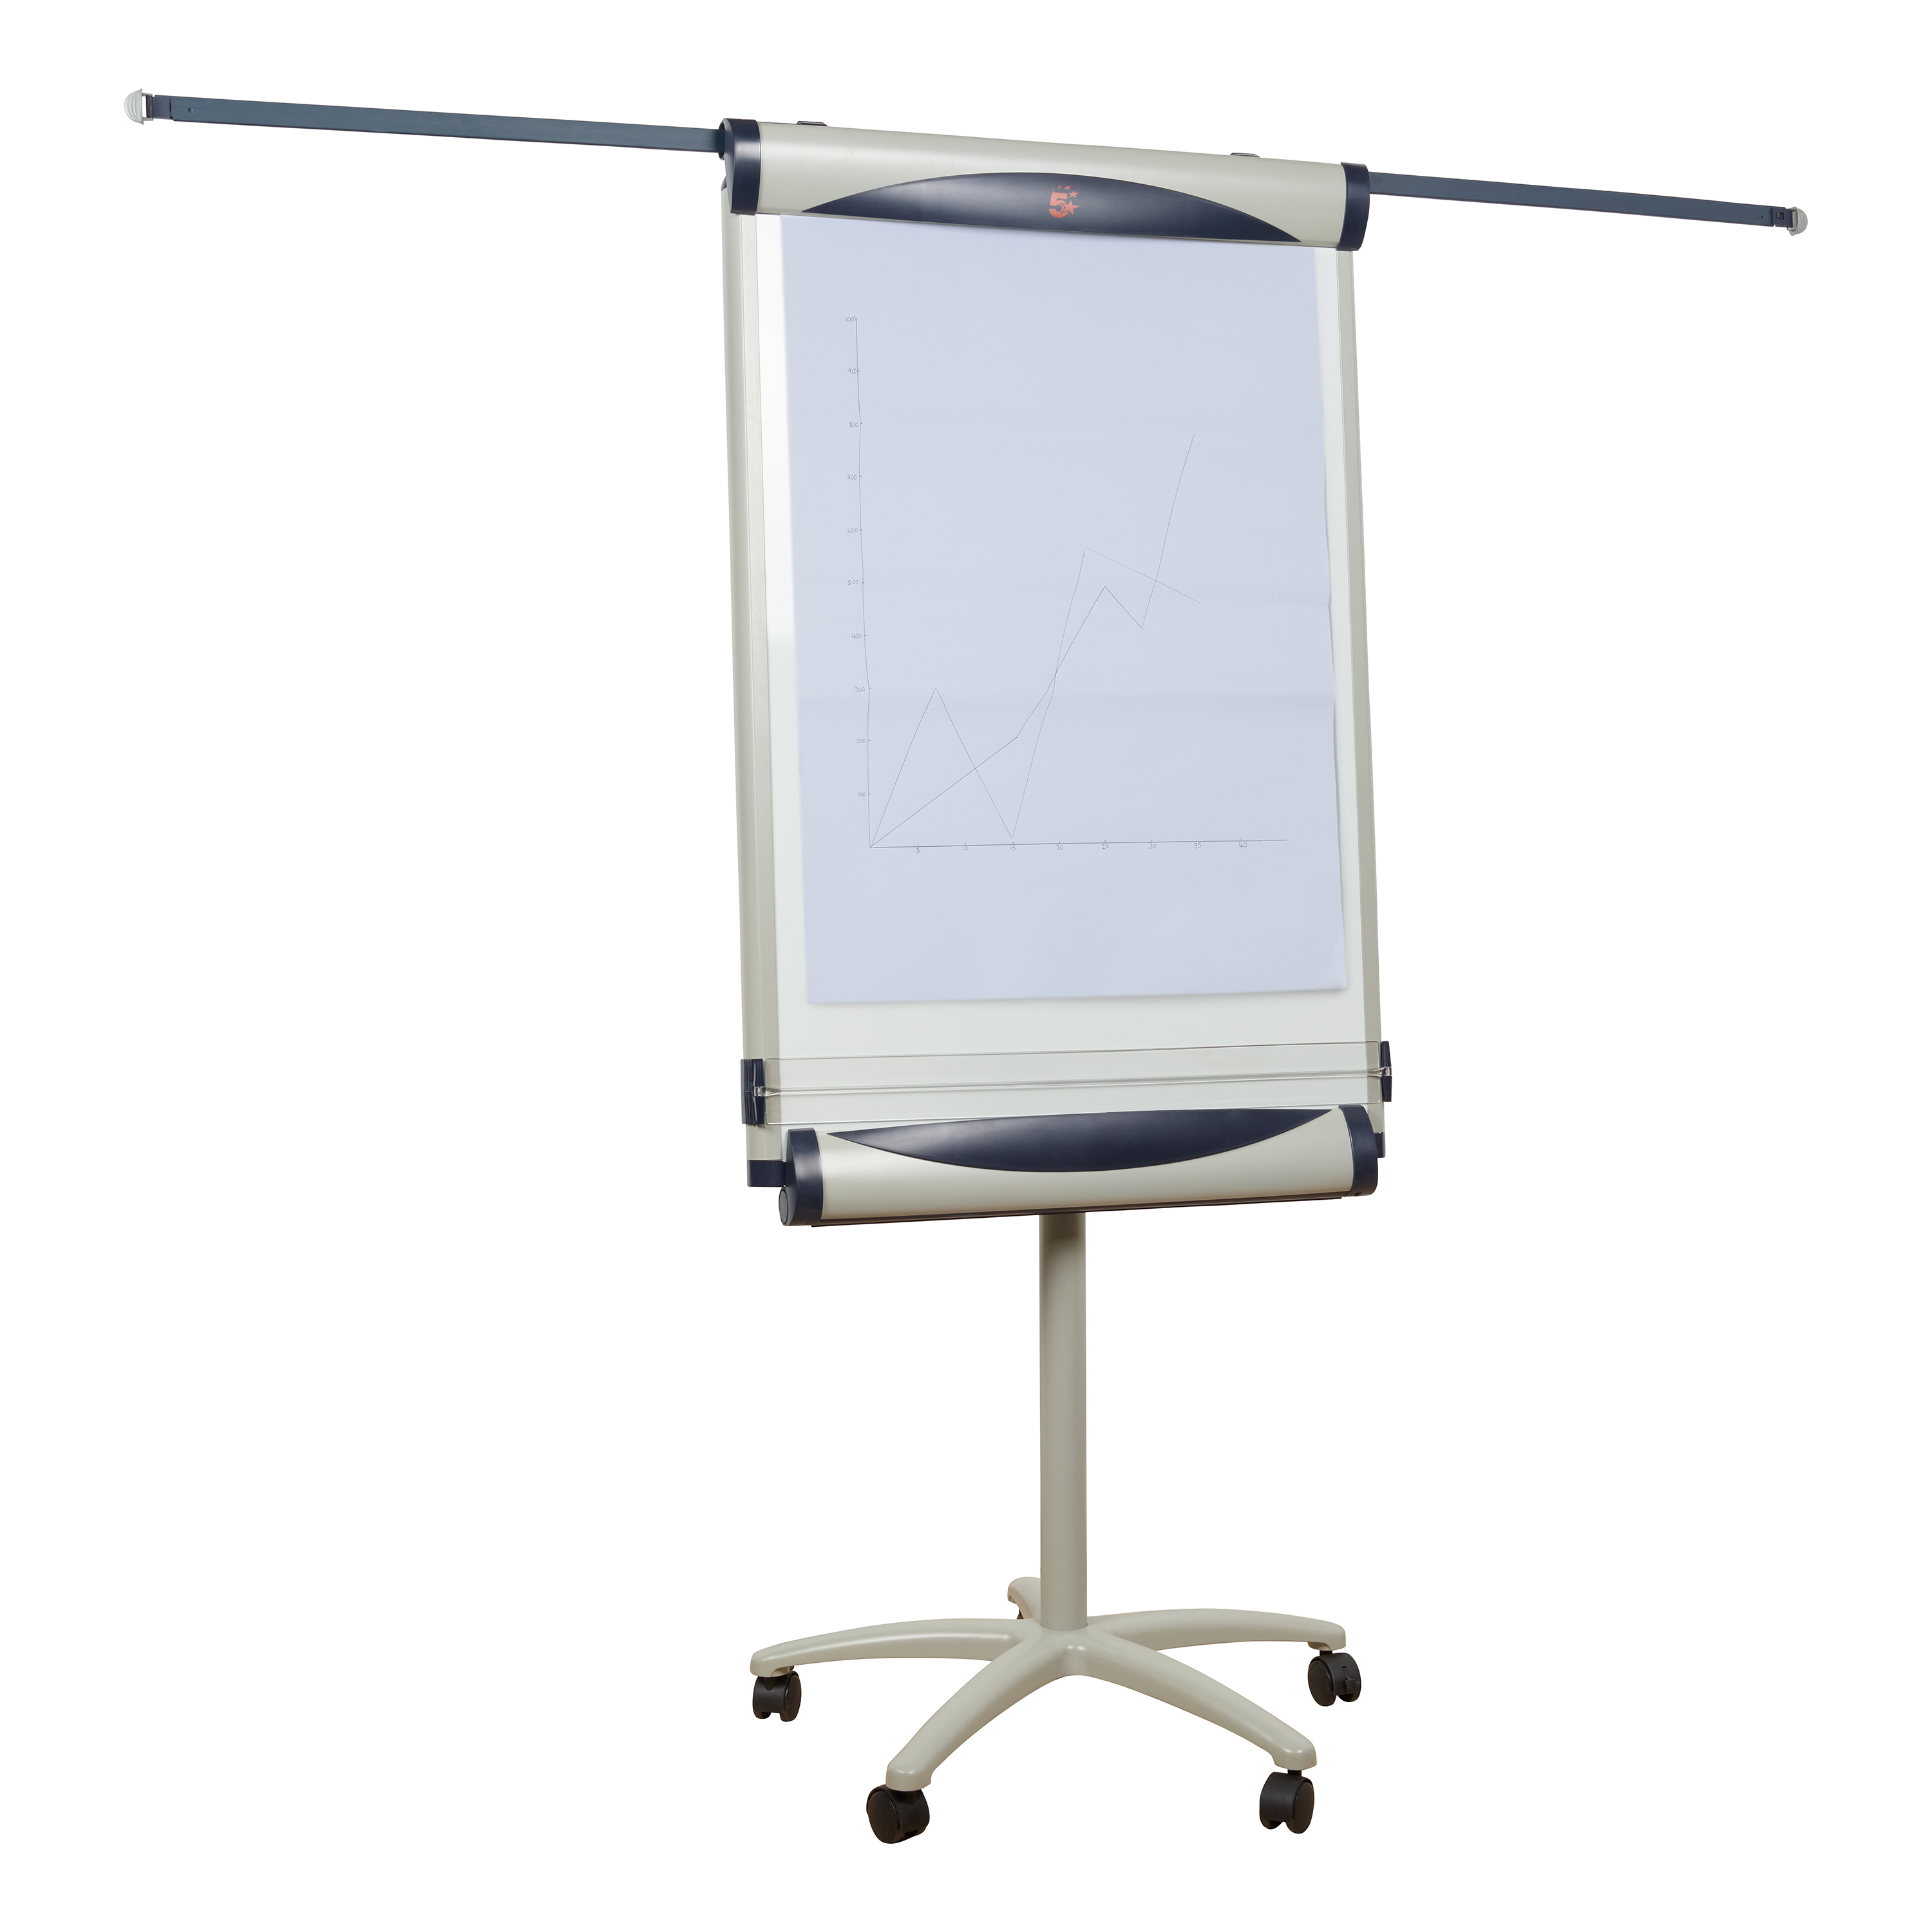 5 Star Office Mobile Executive Easel Magnetic Mobile on 5 Castors for Pads A1 and Euro